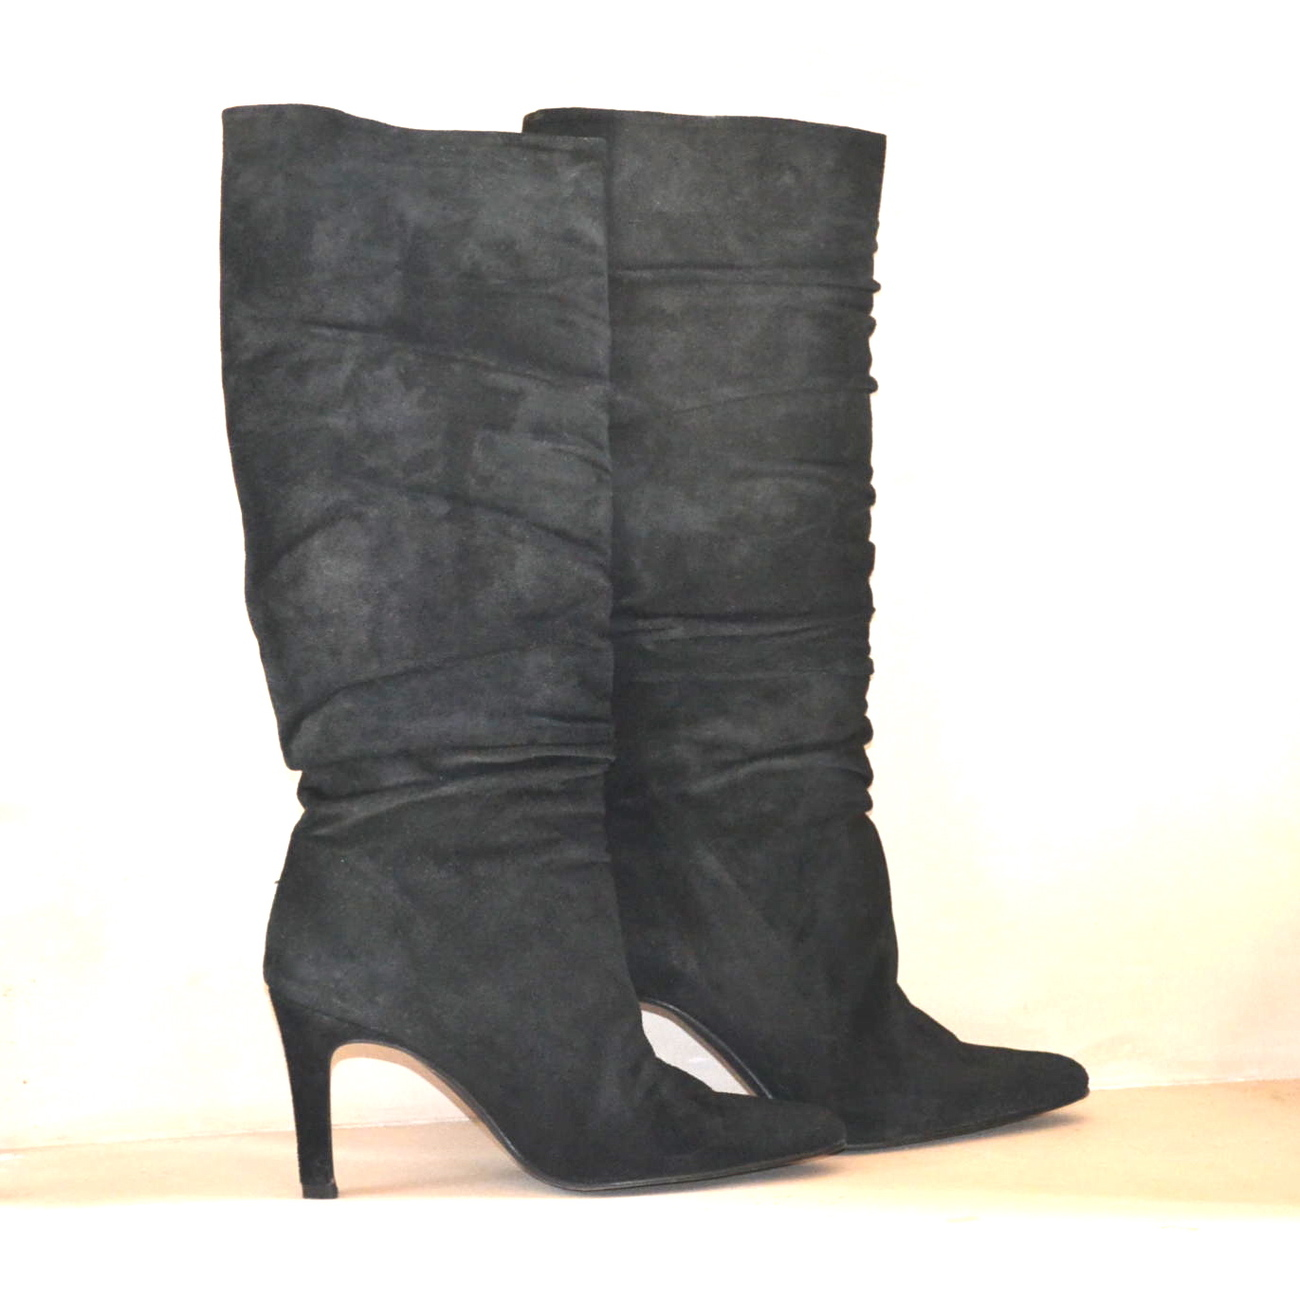 Banana Republic Boots Chiara Black Ruched Suede Stiletto Spike Heel 6M LNIB Chic